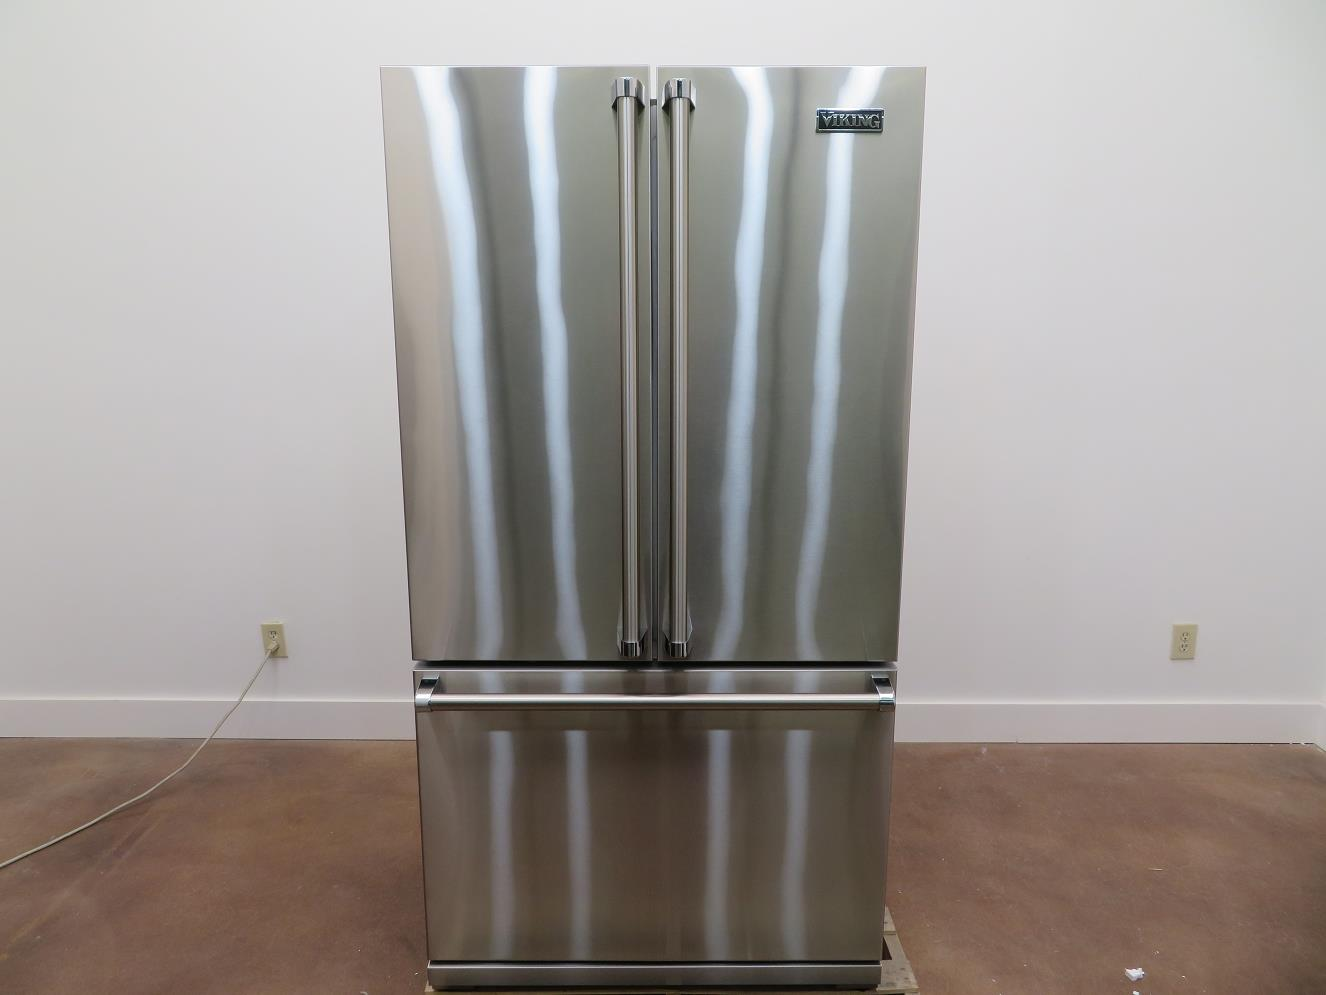 Details About Viking 3 Series 36 In Counter Depth French Door Refrigerator  RVRF336SS S. Steel